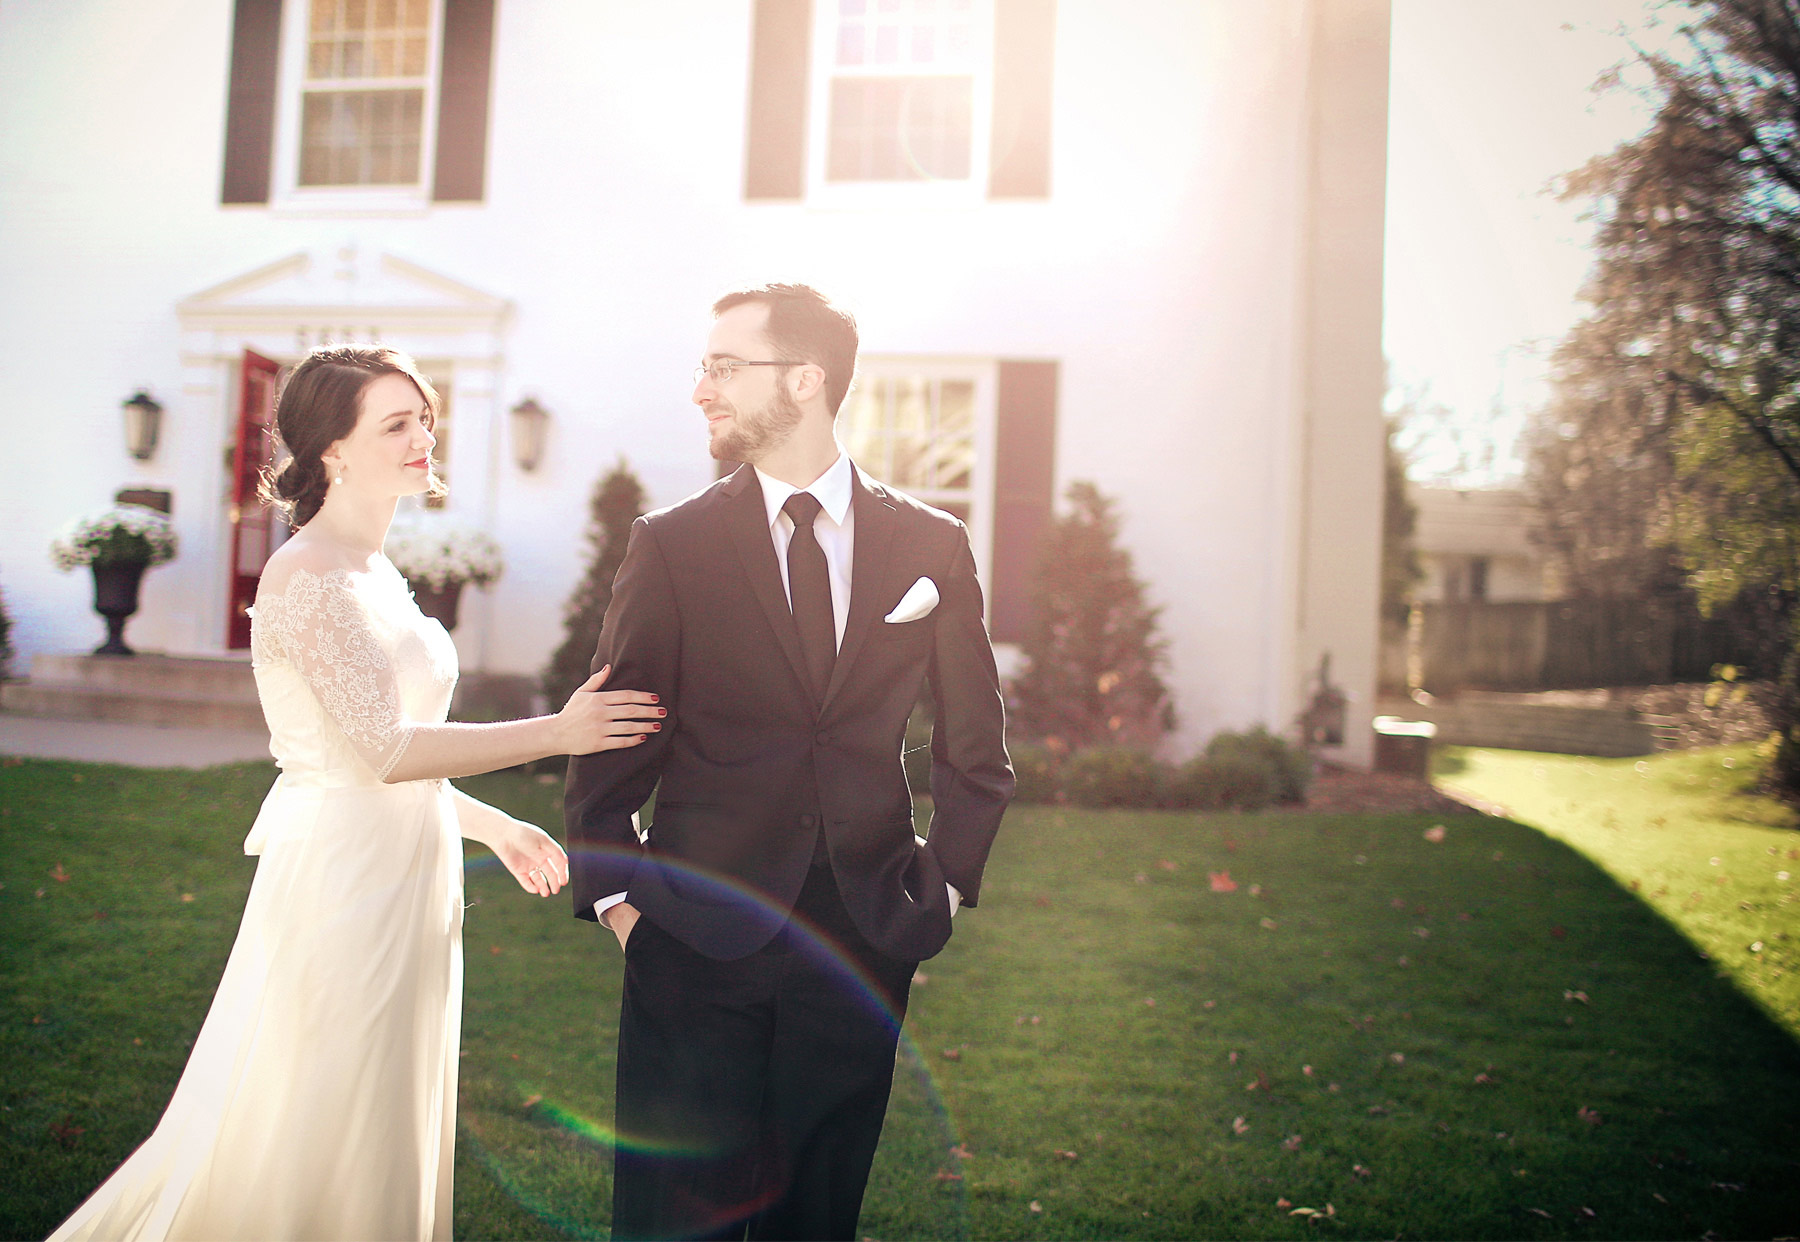 03-Minneapolis-Minnesota-Wedding-Photography-by-Vick-Photography-First-Look-Vintage-Sarah-and-Patrick.jpg